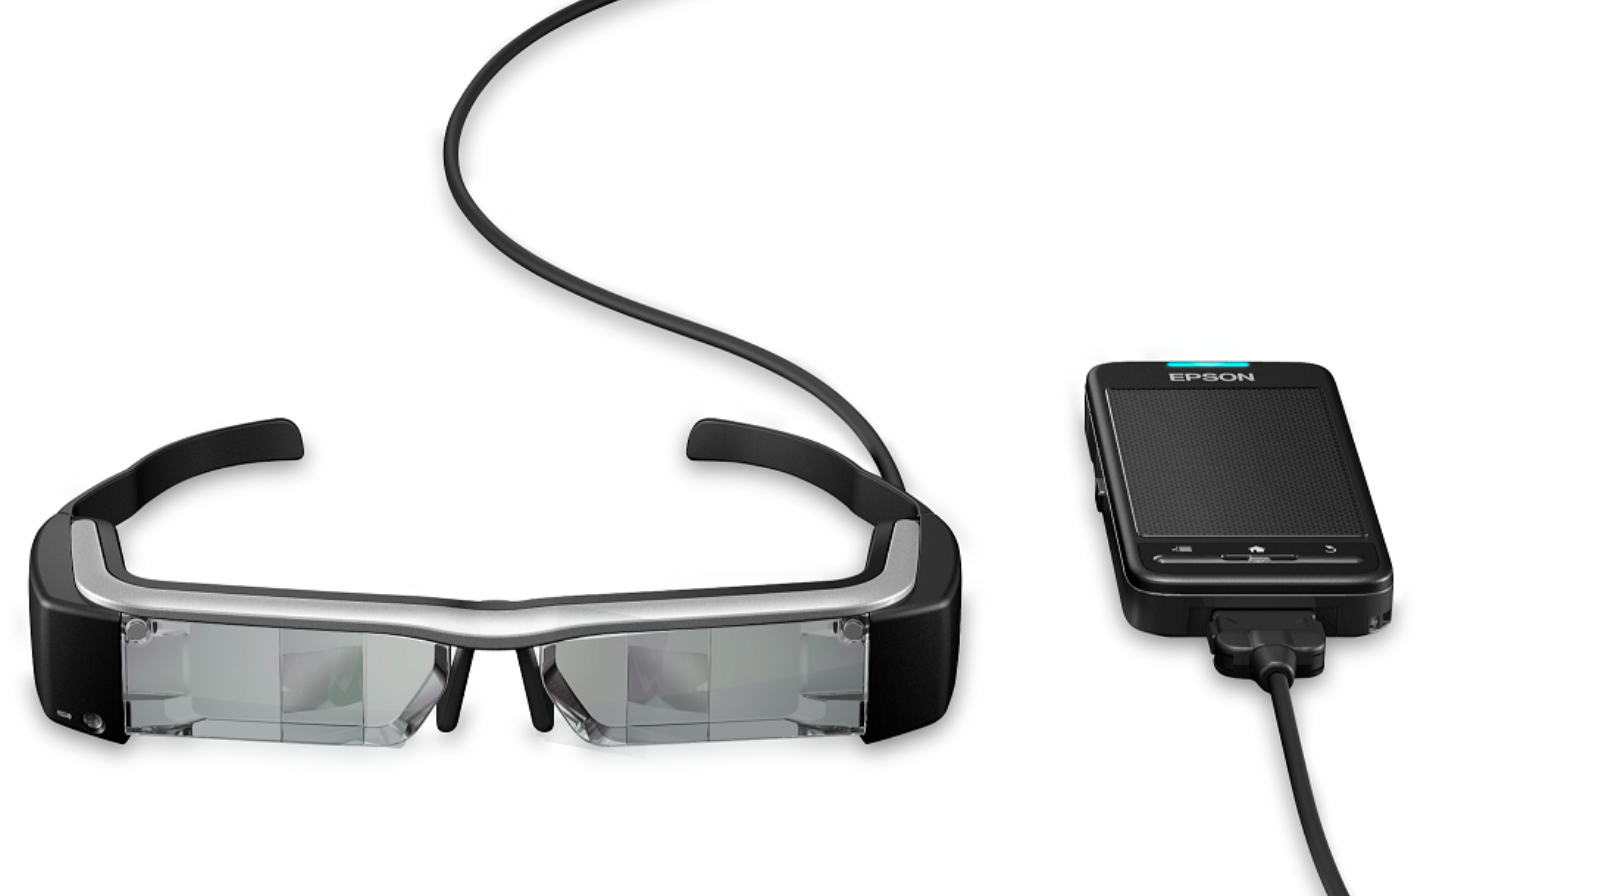 Moverio BT200 smart glasses. Photo courtesy of Epson